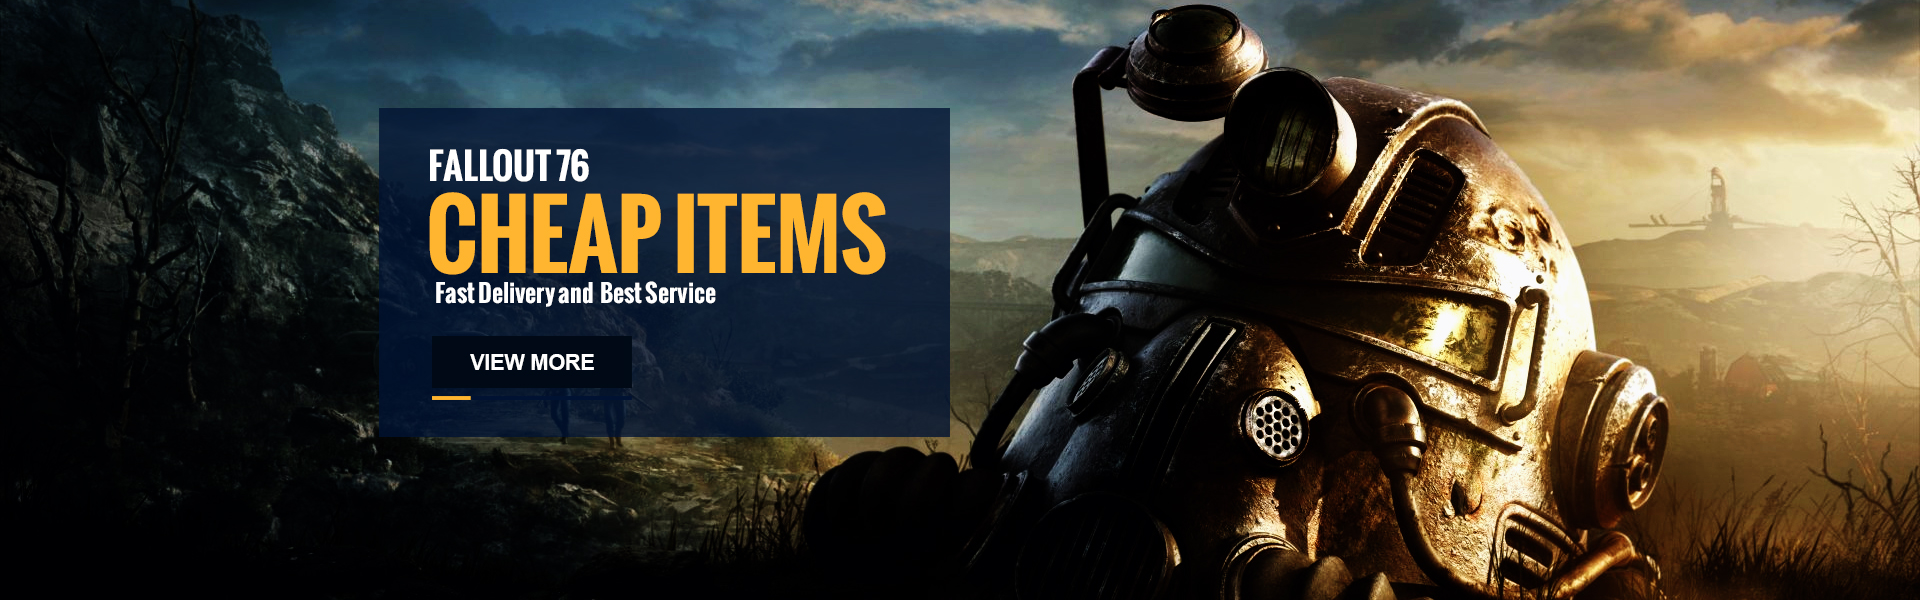 fallout76items